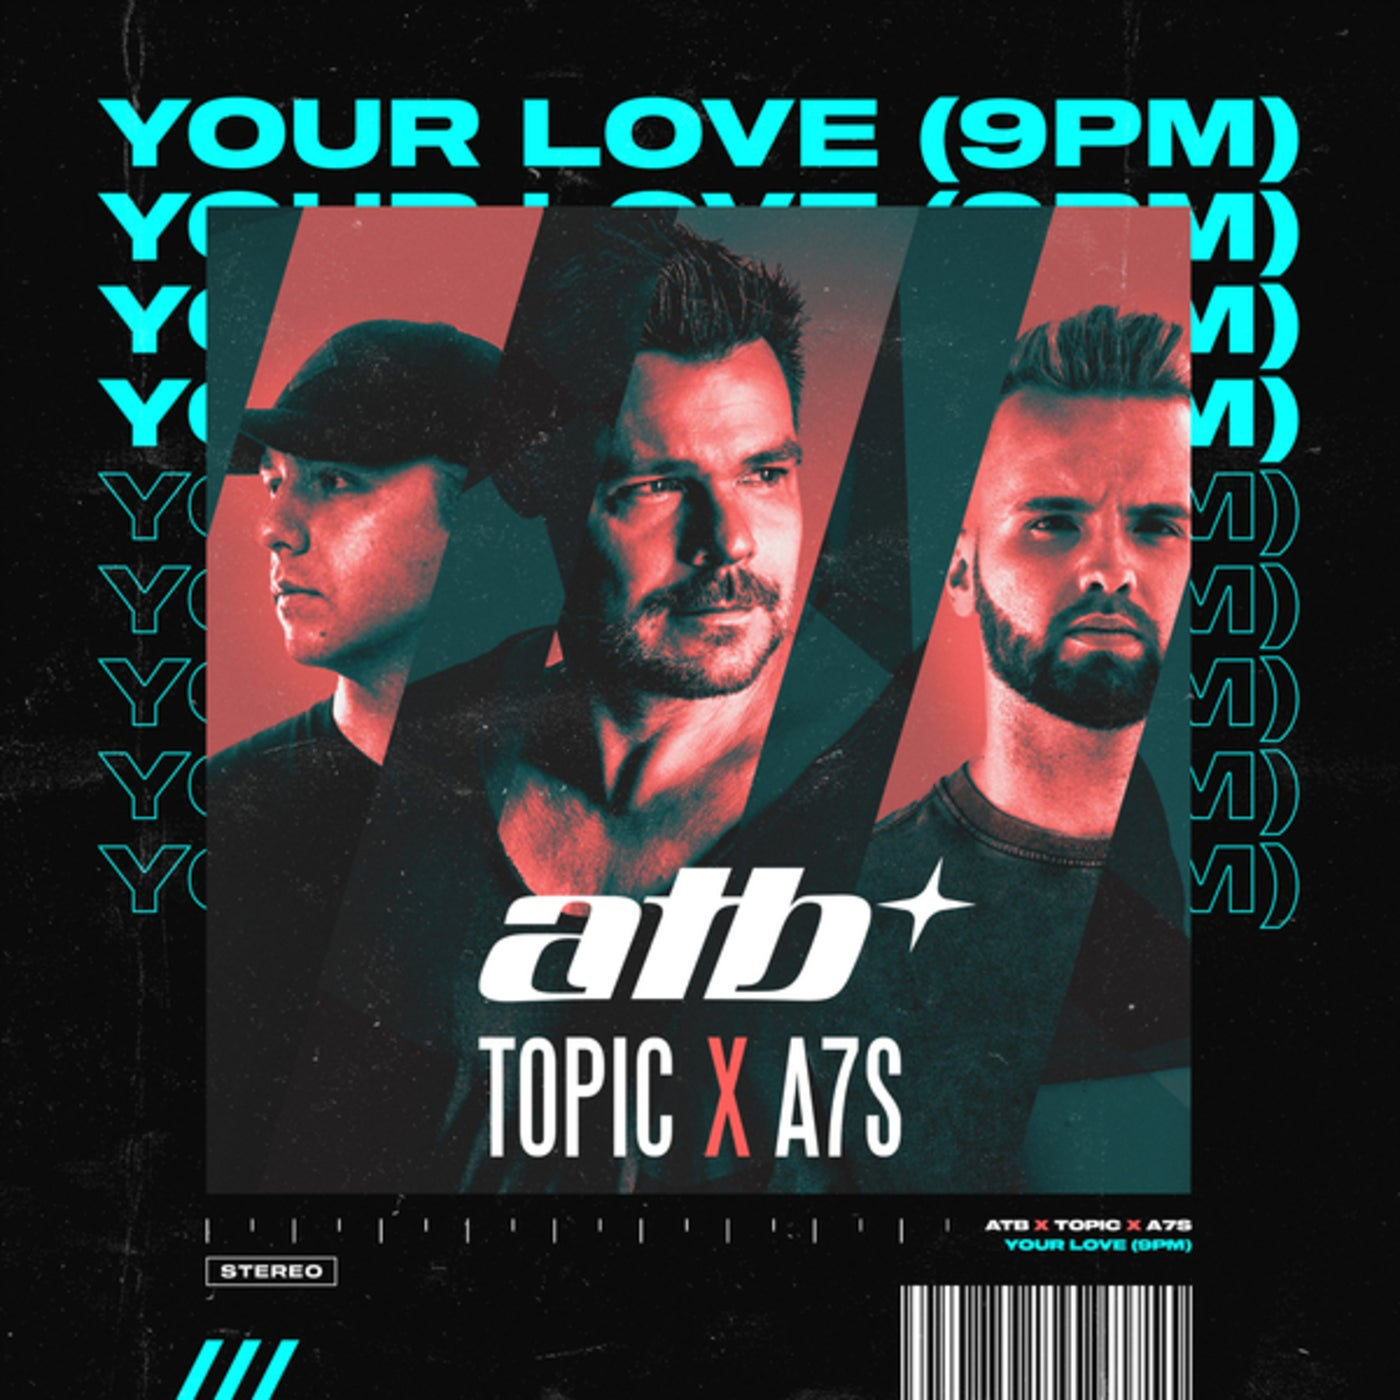 ATB x Topic & A7S - Your Love (9PM) (Extended Mix)